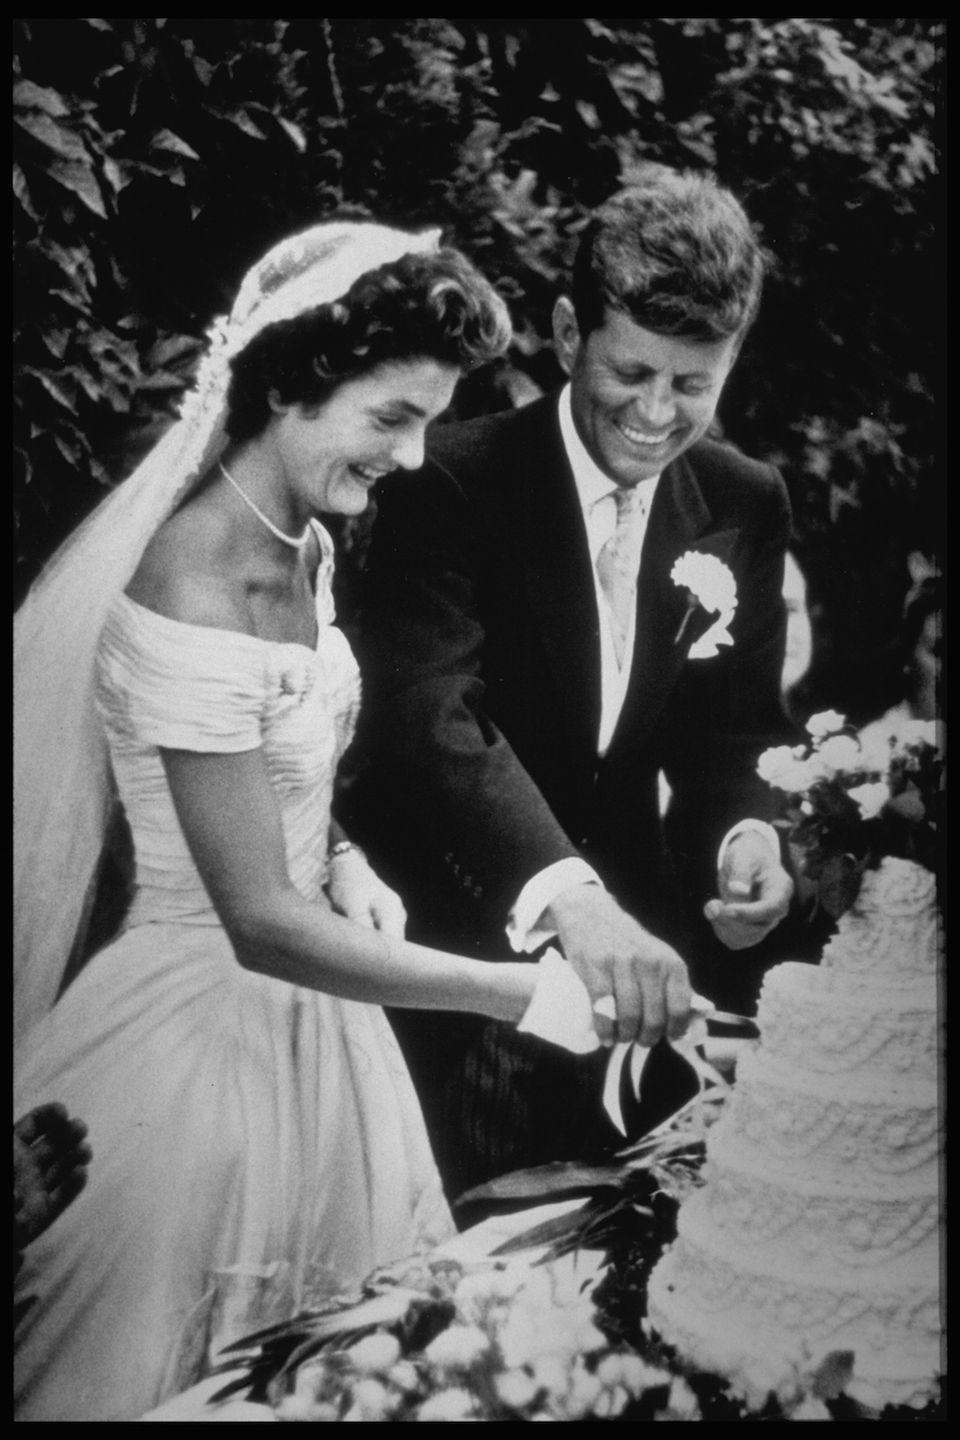 "<p>On September 12, <a href=""https://www.jfklibrary.org/Research/Research-Aids/Ready-Reference/JKO-Fast-Facts/Wedding-Details.aspx"" rel=""nofollow noopener"" target=""_blank"" data-ylk=""slk:Jacqueline Bouvier"" class=""link rapid-noclick-resp"">Jacqueline Bouvier</a> weds then-Senator John Fitzgerald Kennedy in Newport, Rhode Island. Their reception at Hammersmith Farm would host more than 1,200 guests. </p><p><em>RELATED: <a href=""https://www.goodhousekeeping.com/life/entertainment/a33611/jackie-kennedy-onassis-facts/"" rel=""nofollow noopener"" target=""_blank"" data-ylk=""slk:12 things you didn't know about Jackie O"" class=""link rapid-noclick-resp"">12 things you didn't know about Jackie O</a></em></p>"